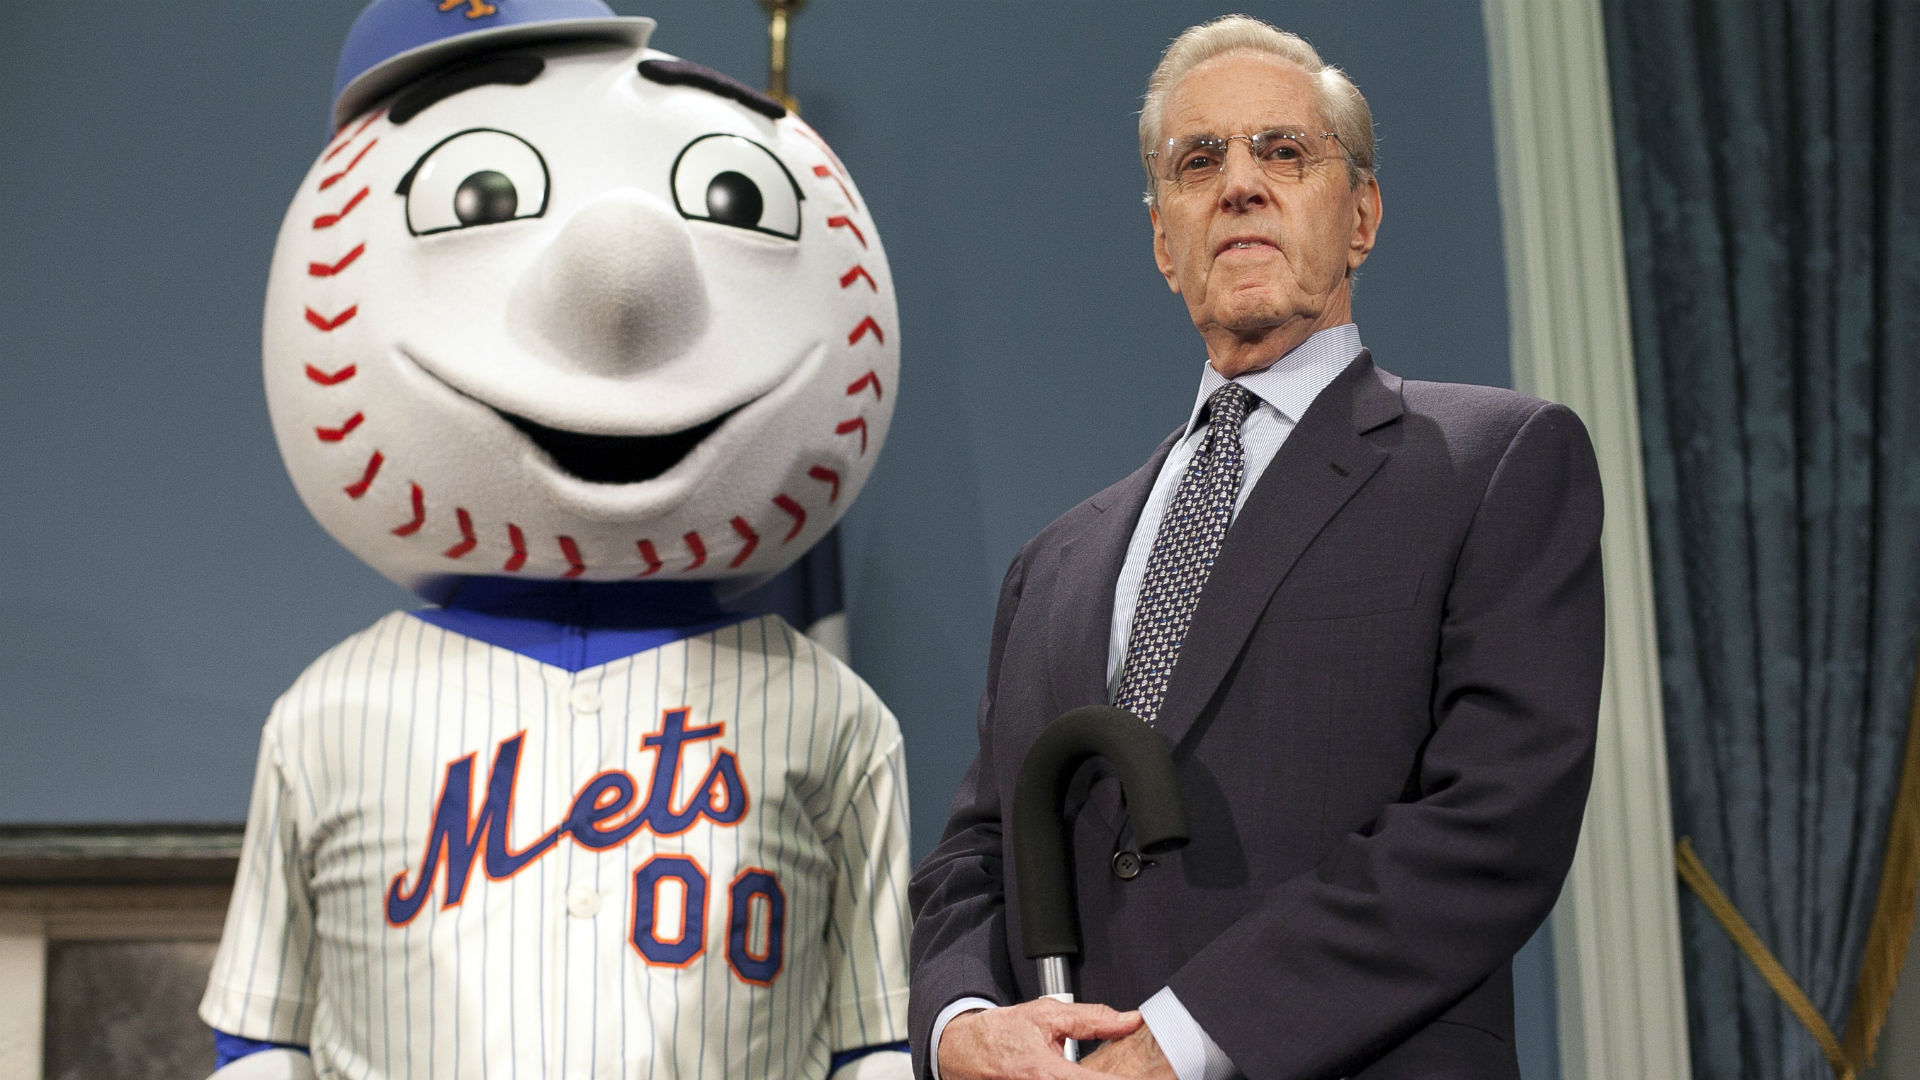 Mr. Met and Mets owner Fred Wilpon